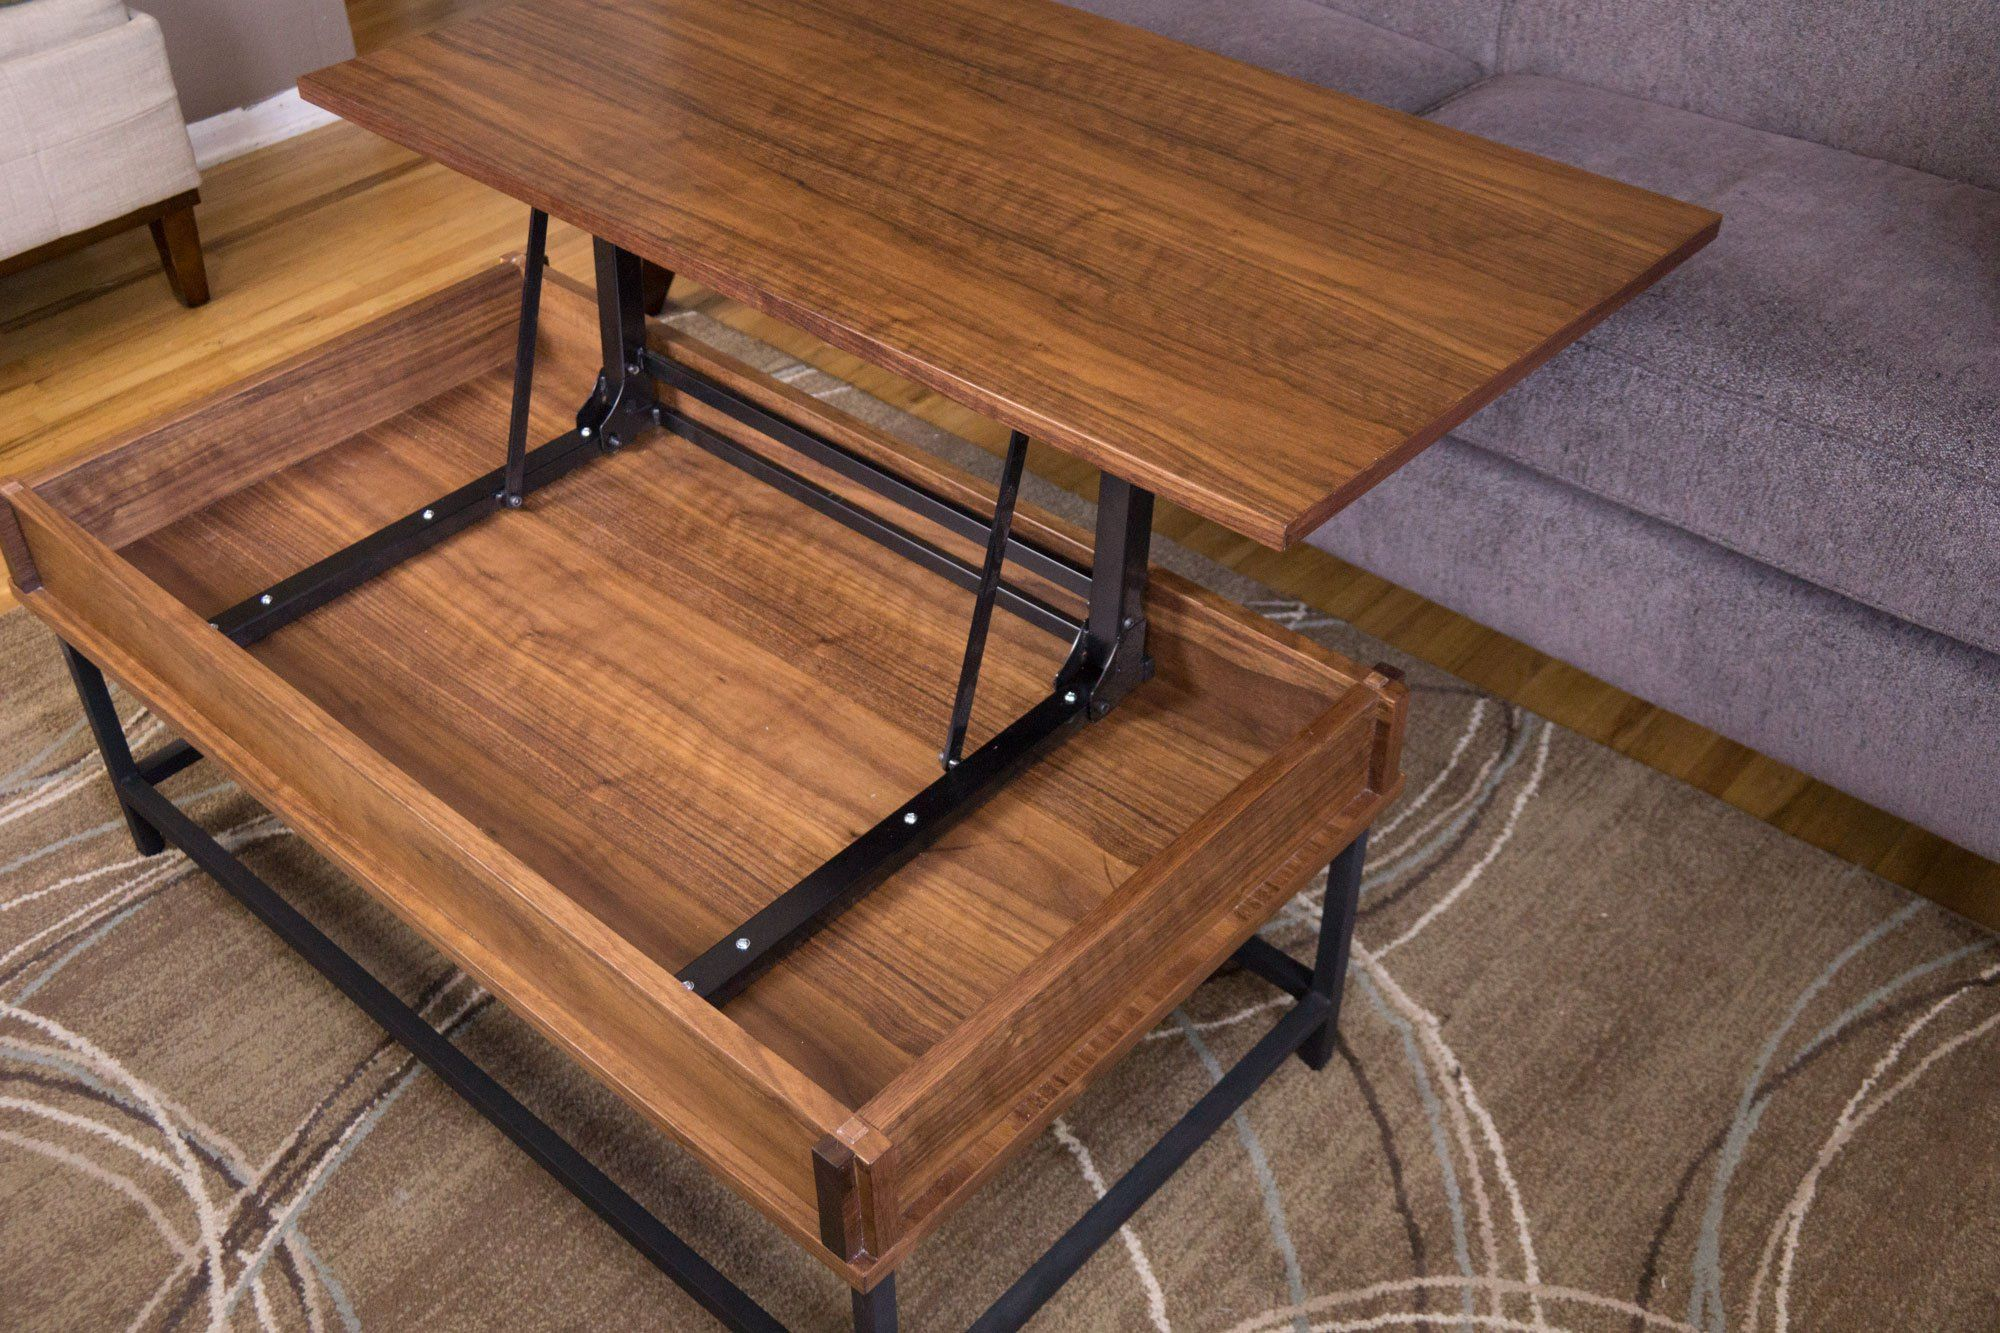 How To Make A Coffee Table With Lift Top Make Something Build A Coffee Table Coffee Table Plans Coffee Table